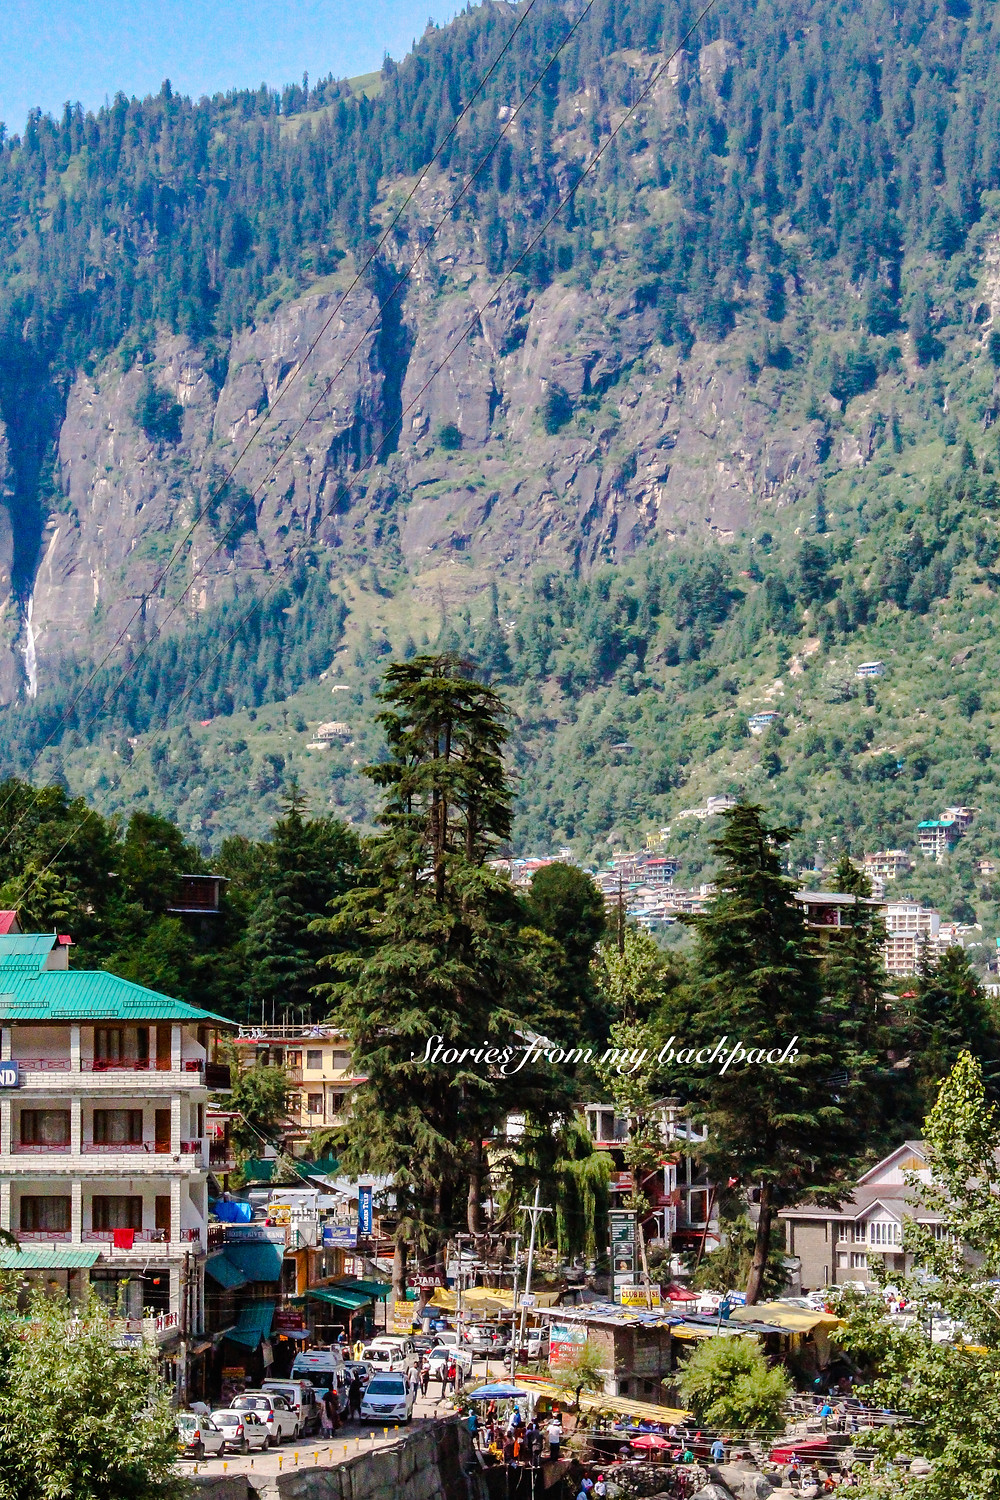 Restaurants in old Manali, Shops in Old Manali, Activities in Old Manali